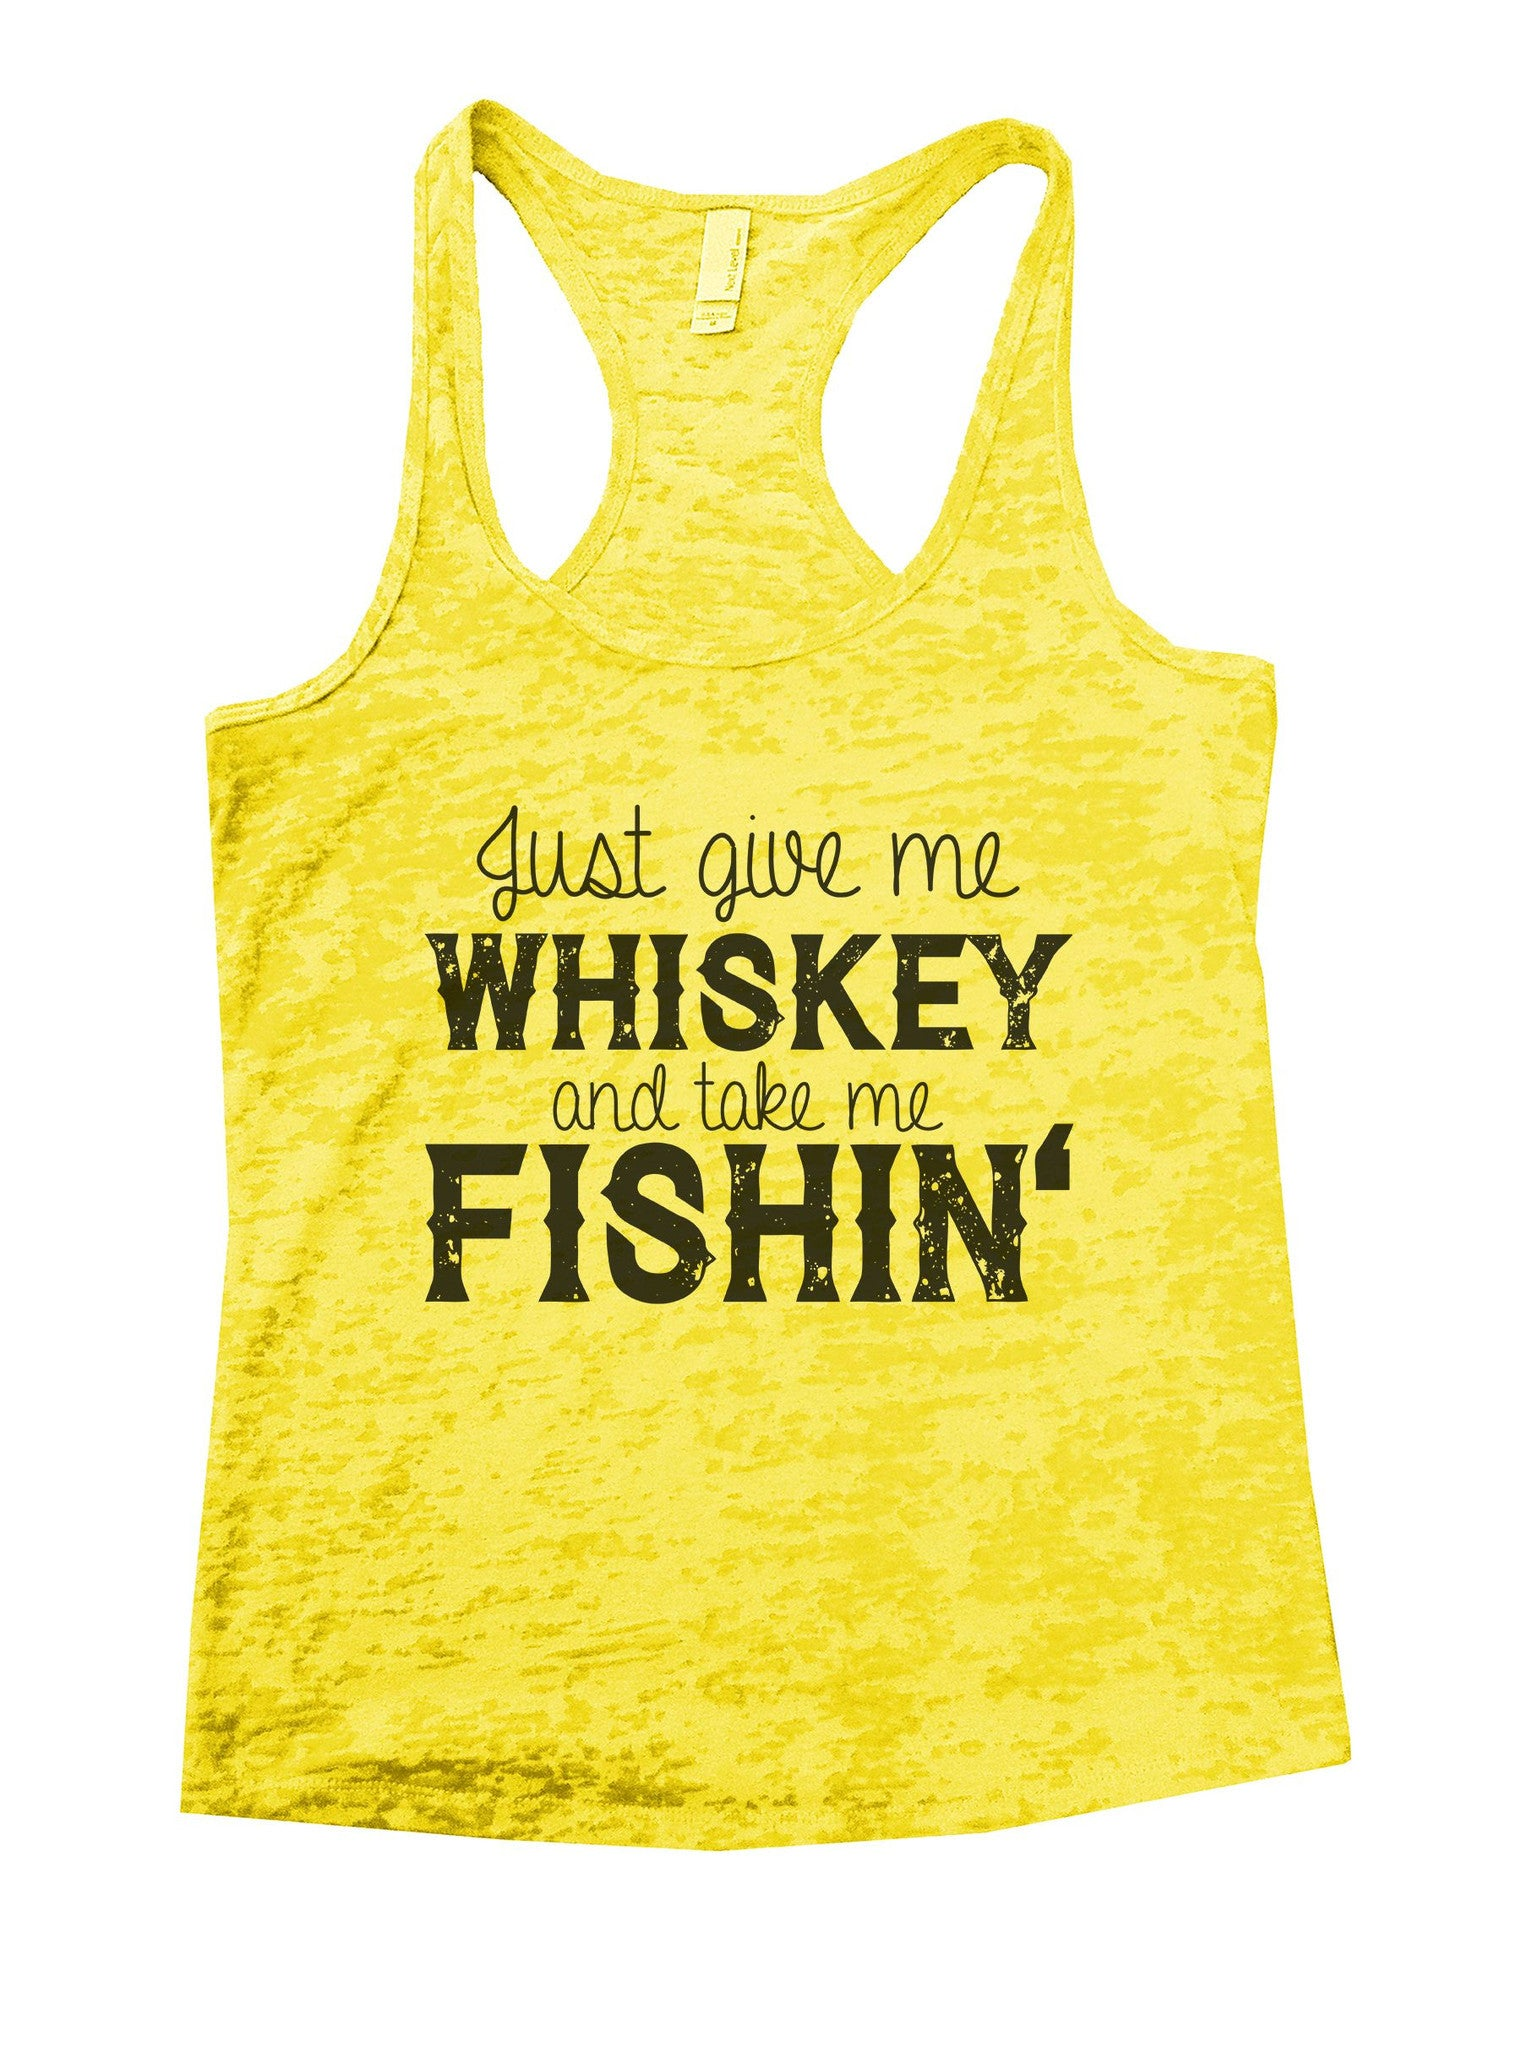 Just Give Me Whiskey And Take Me Fishin Burnout Tank Top By BurnoutTankTops.com - 1012 - Funny Shirts Tank Tops Burnouts and Triblends  - 7